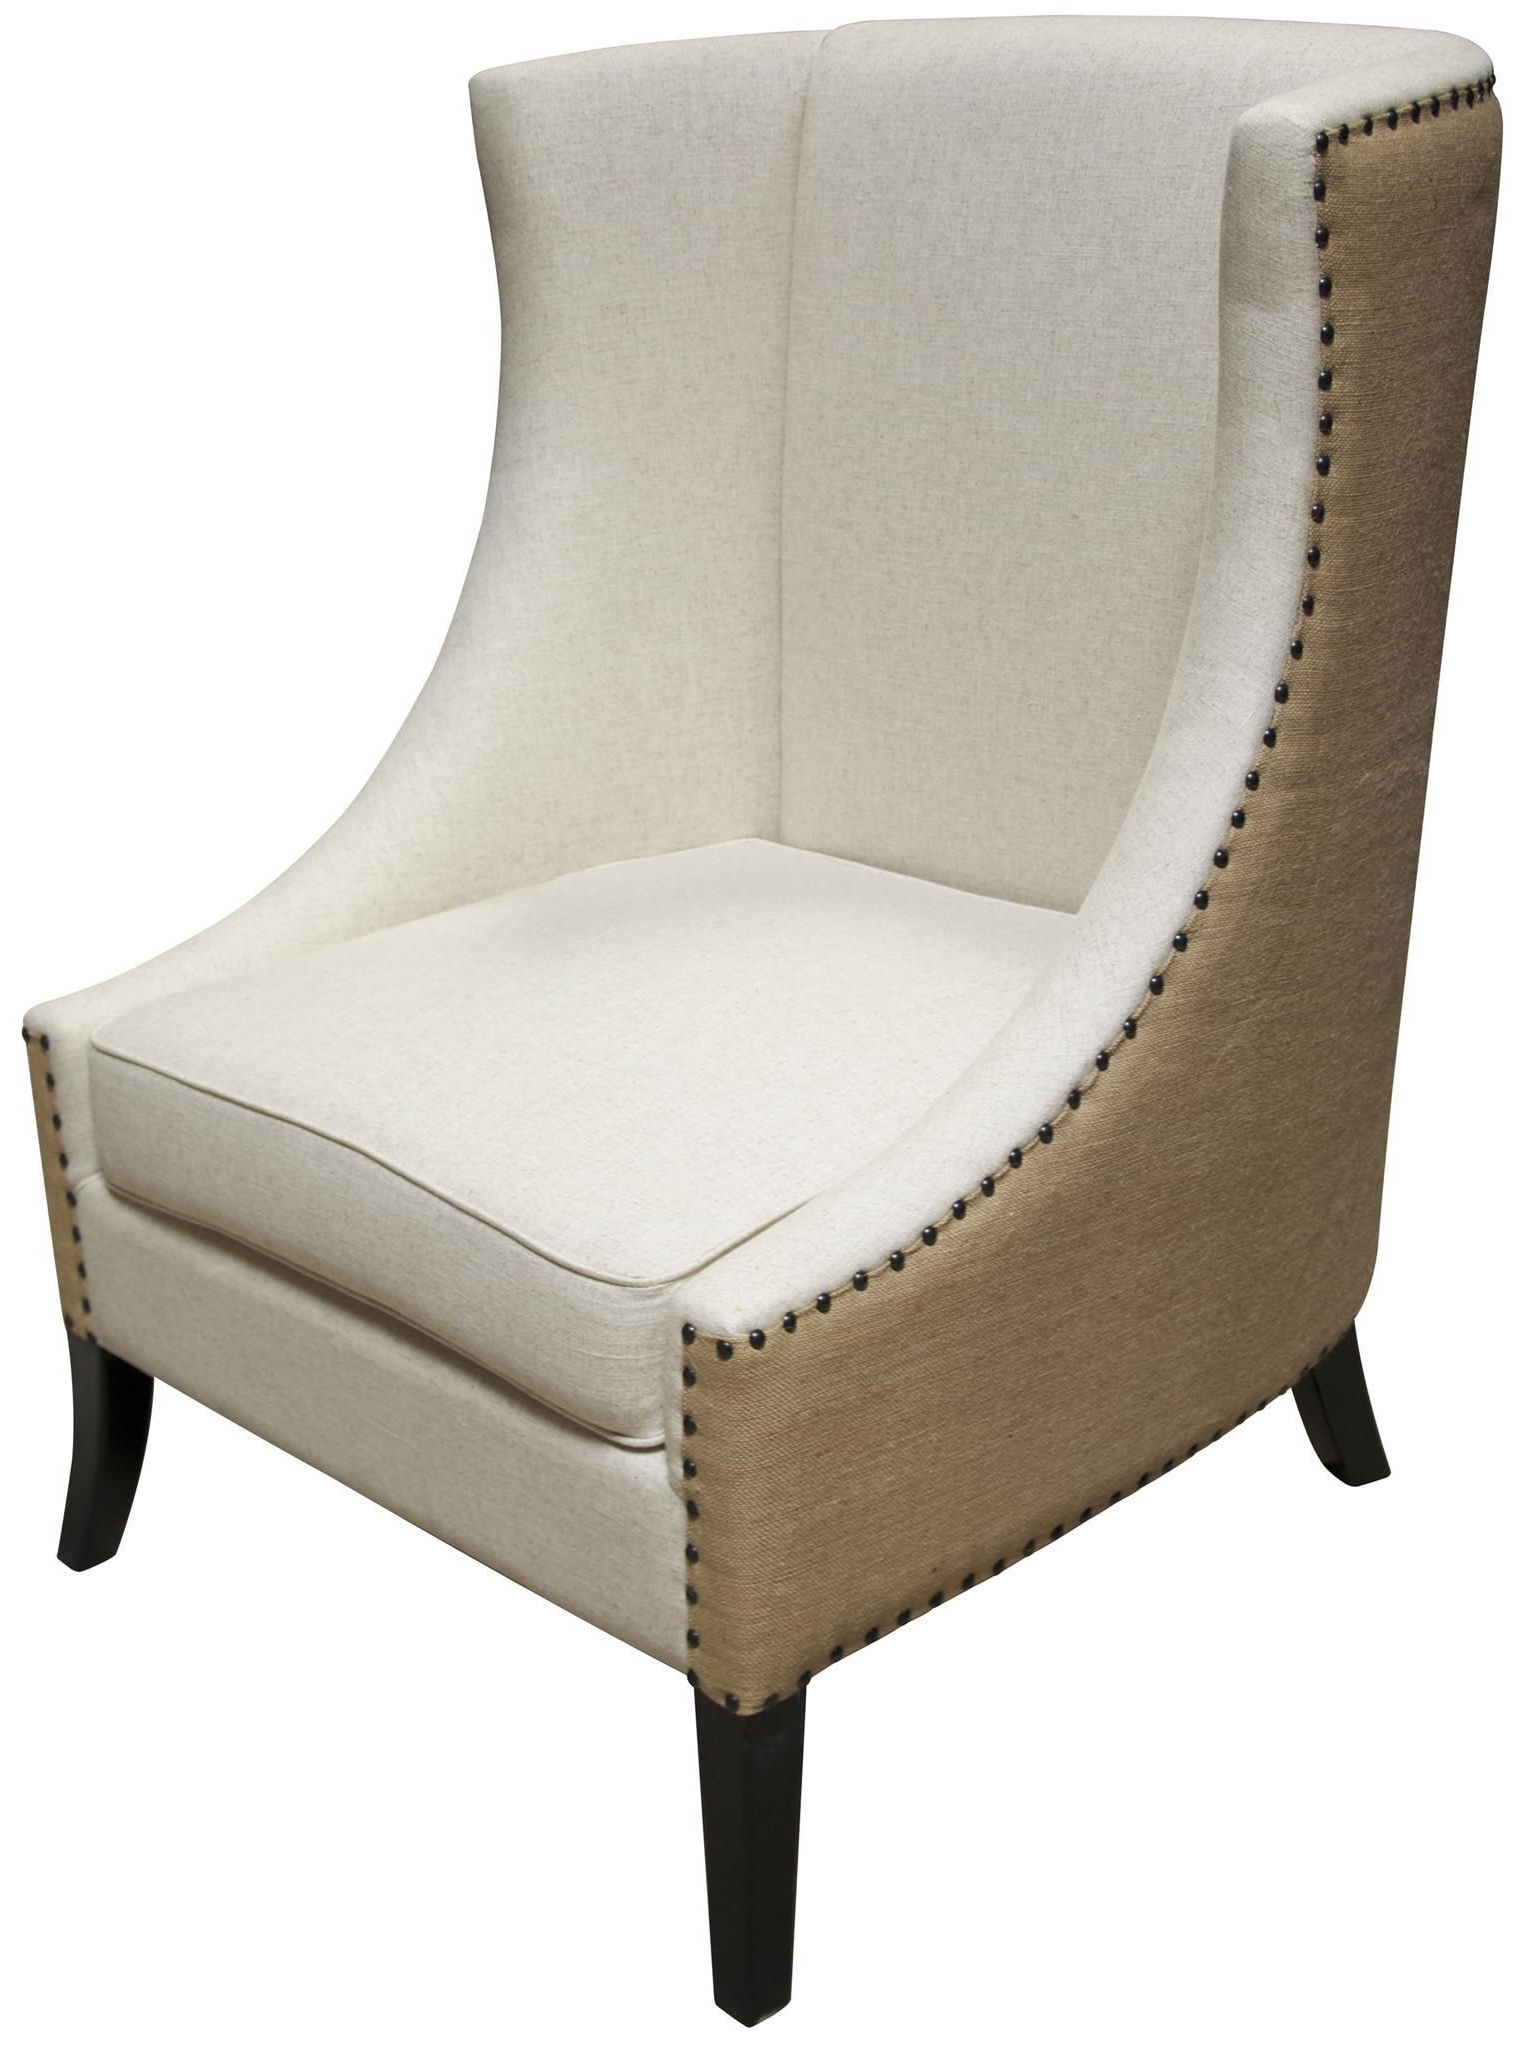 Most Recent Aidan Ii Swivel Accent Chairs Intended For Noir Qs Aiden Chair In (View 13 of 20)